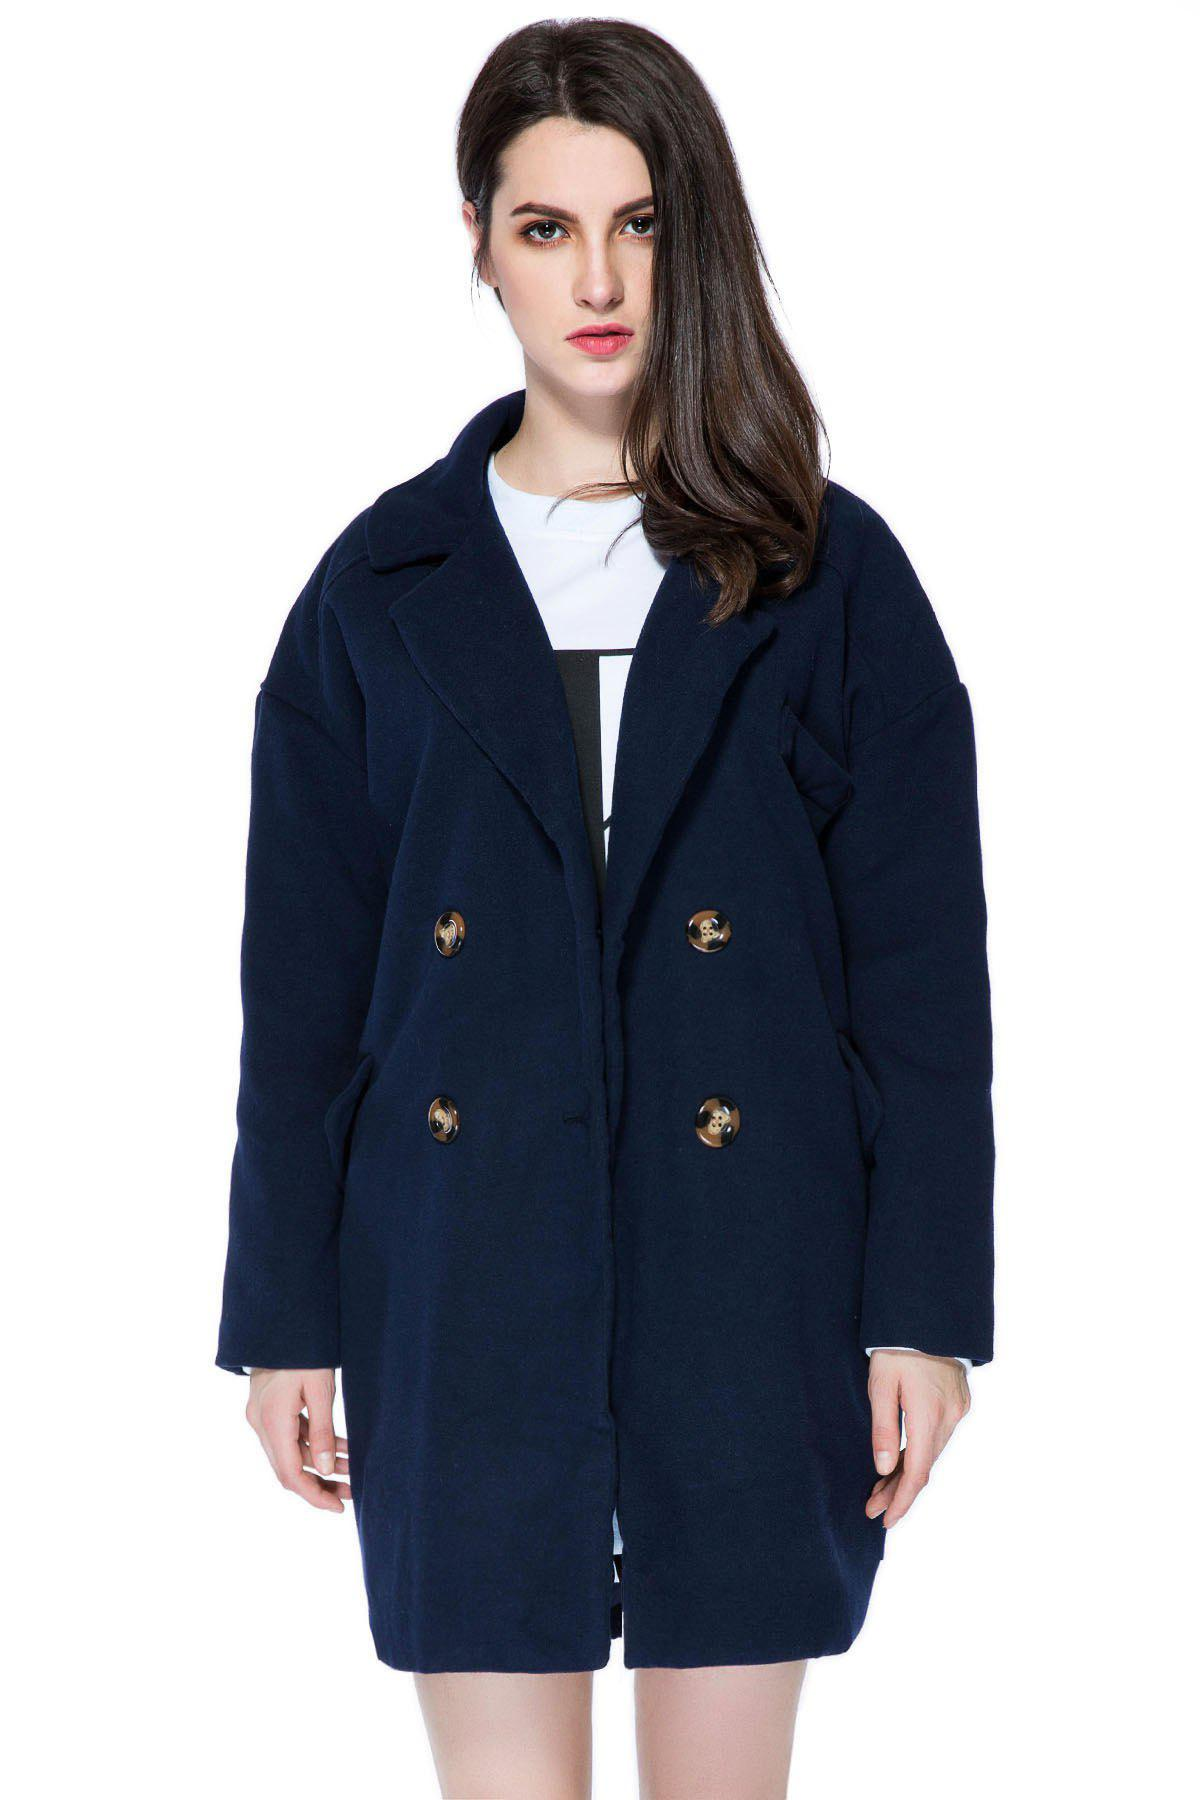 Best Stylish Lapel Neck Long Sleeve Solid Color Double-Breasted Loose-Fitting Women's Coat